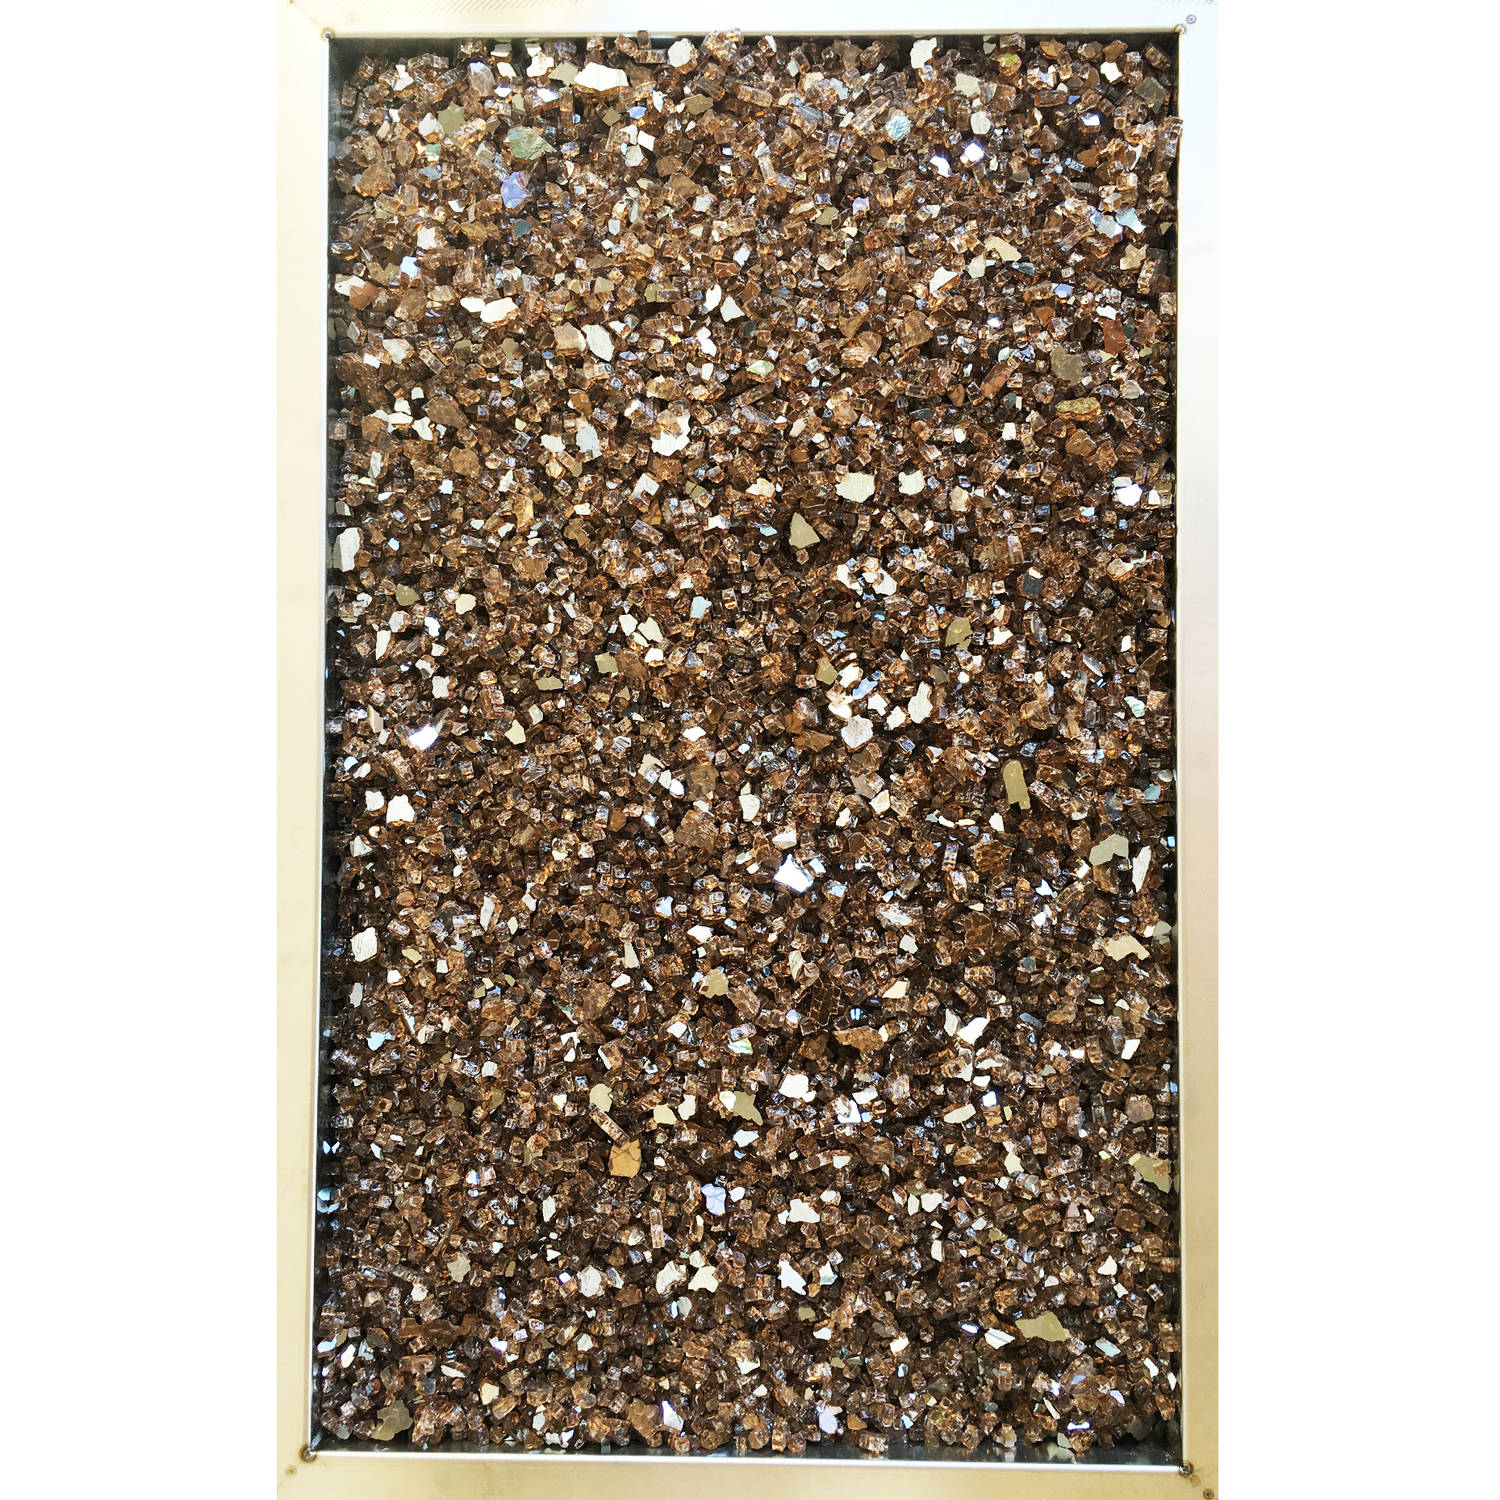 Element Copper Reflective 1 4 Fire Glass 10 Lbs Indoor